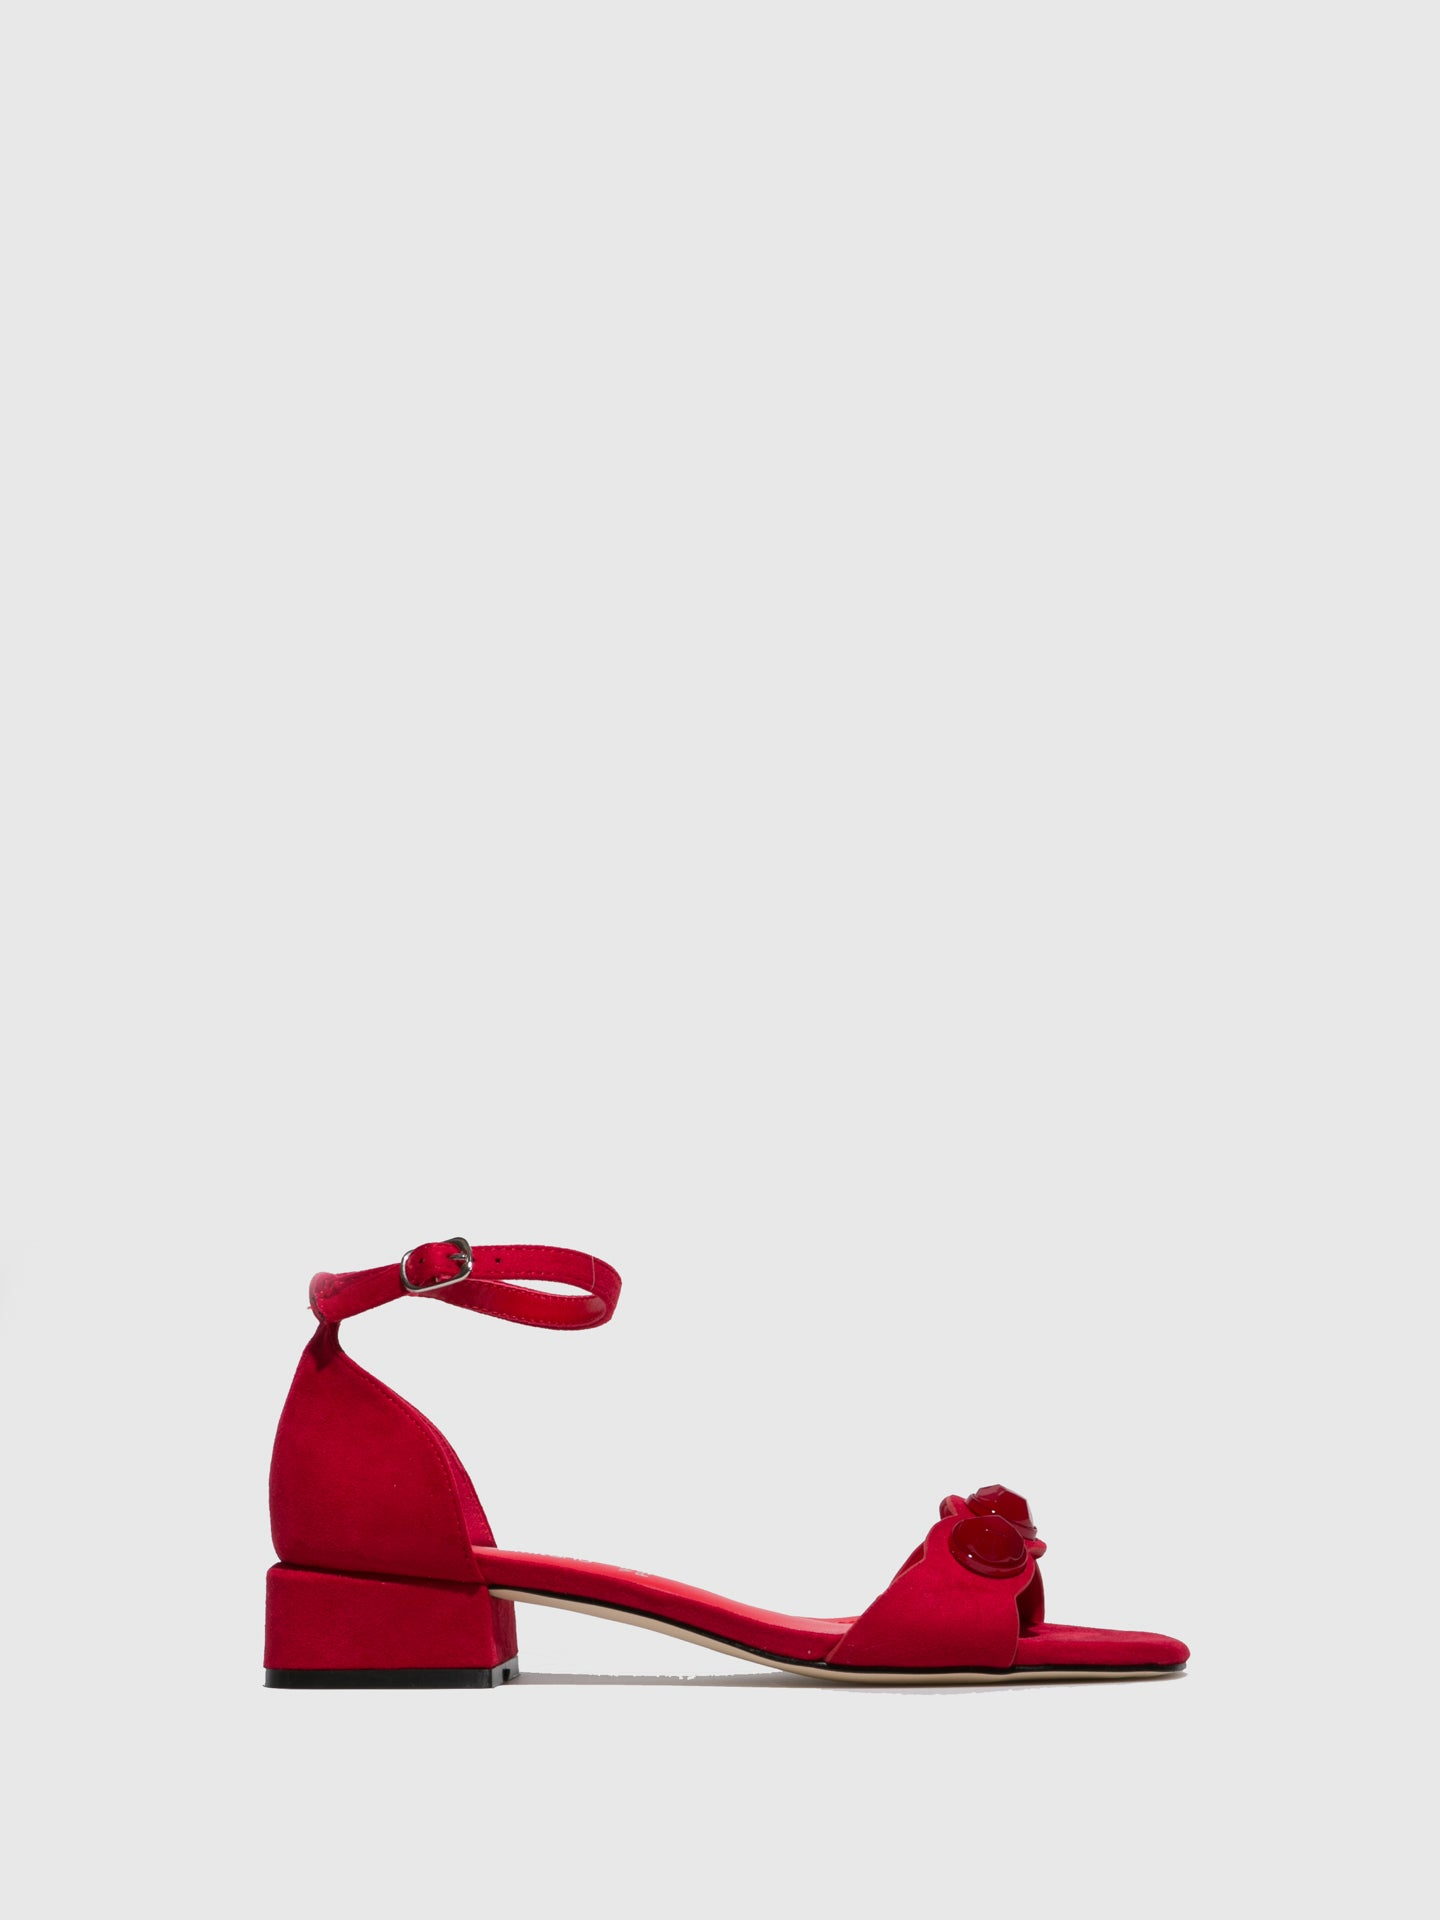 FRANCESCO MILANO Red Ankle Strap Sandals